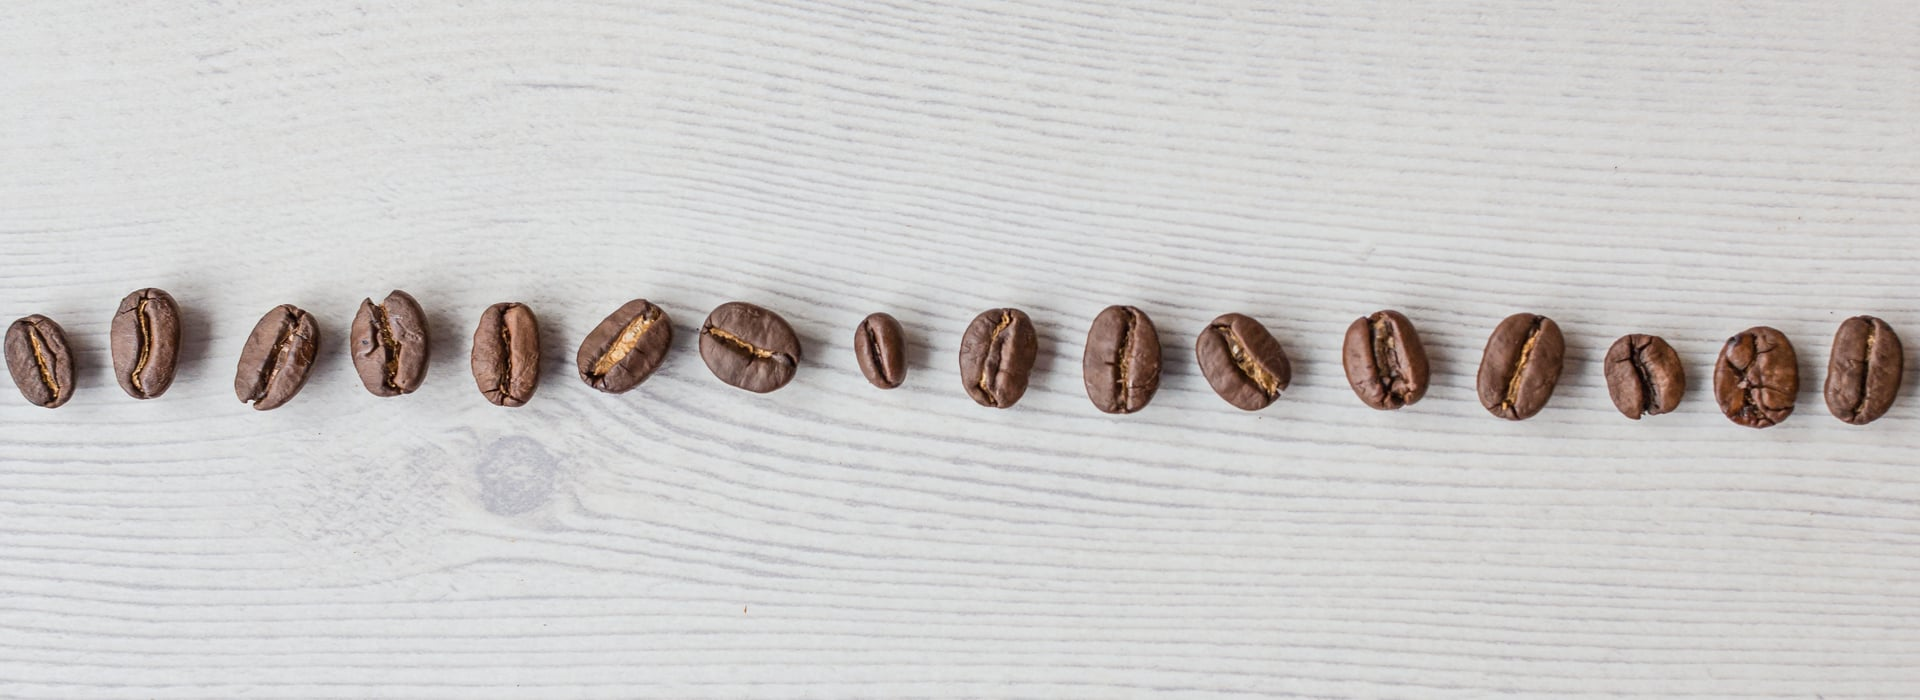 The best coffee beans for espresso by citadella